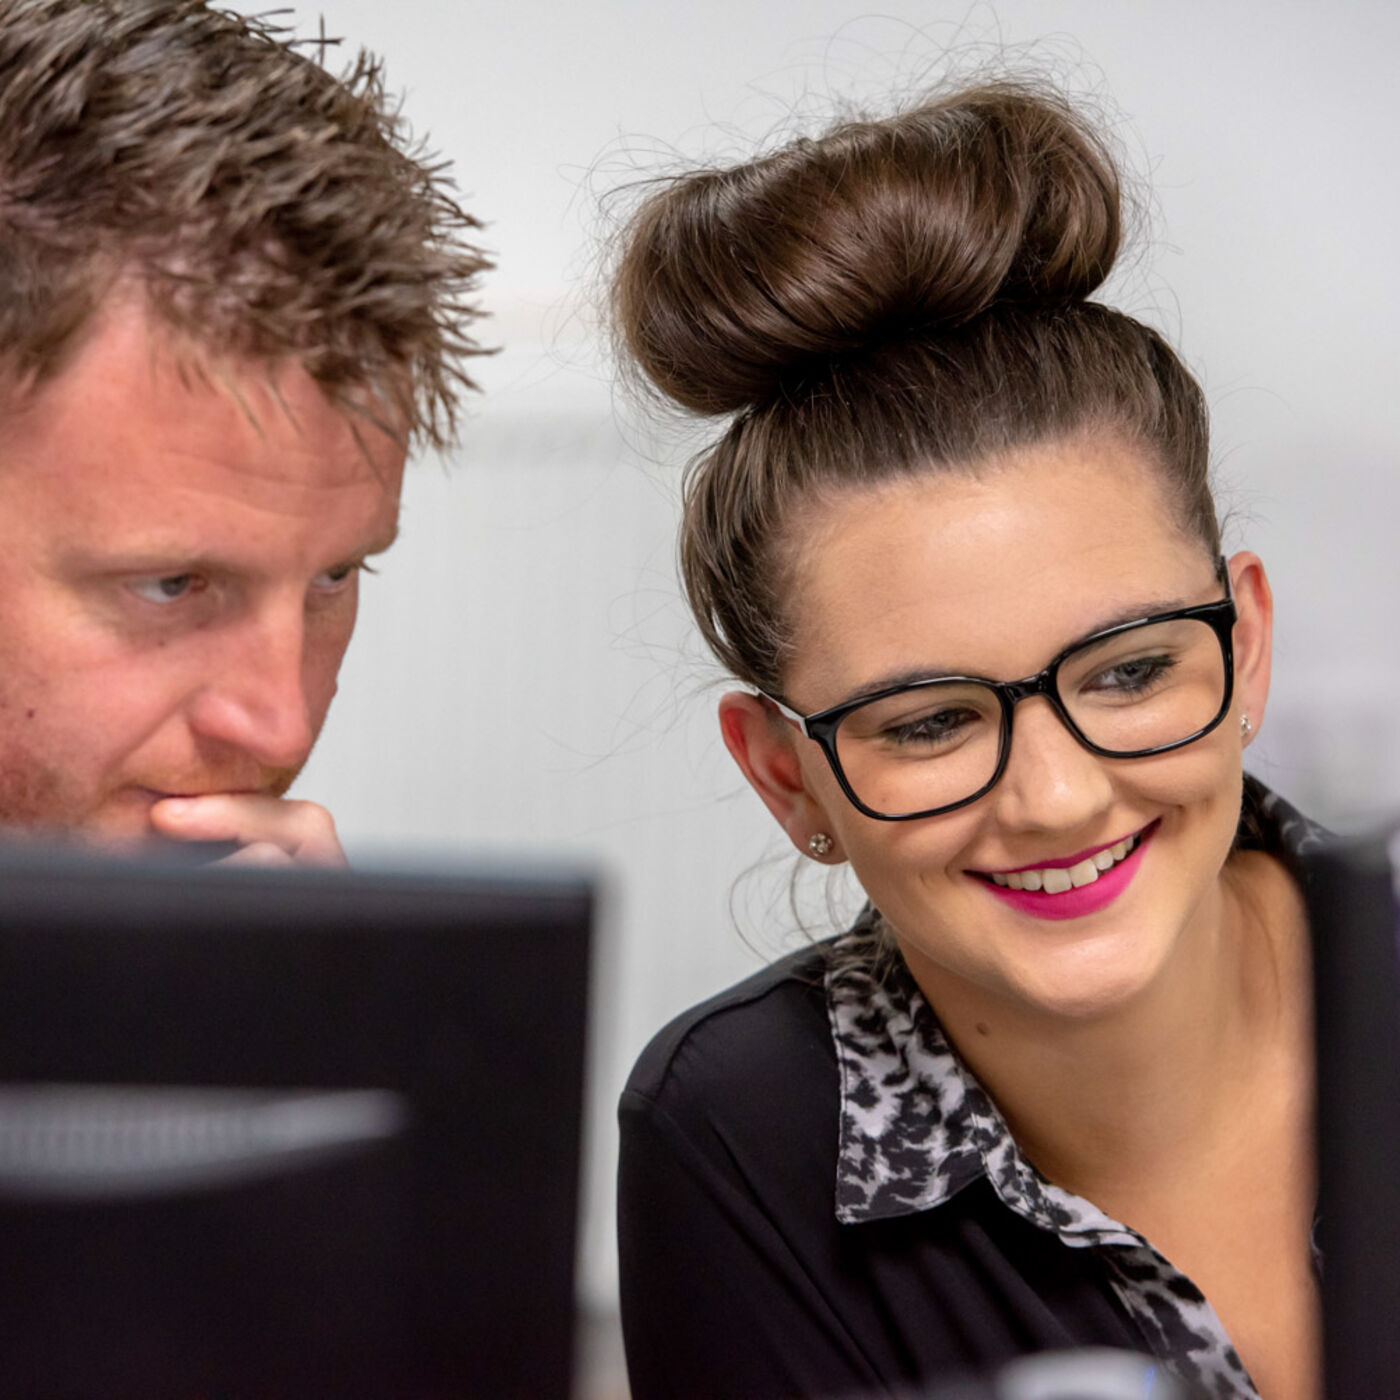 Get The Best Out of Your Staff